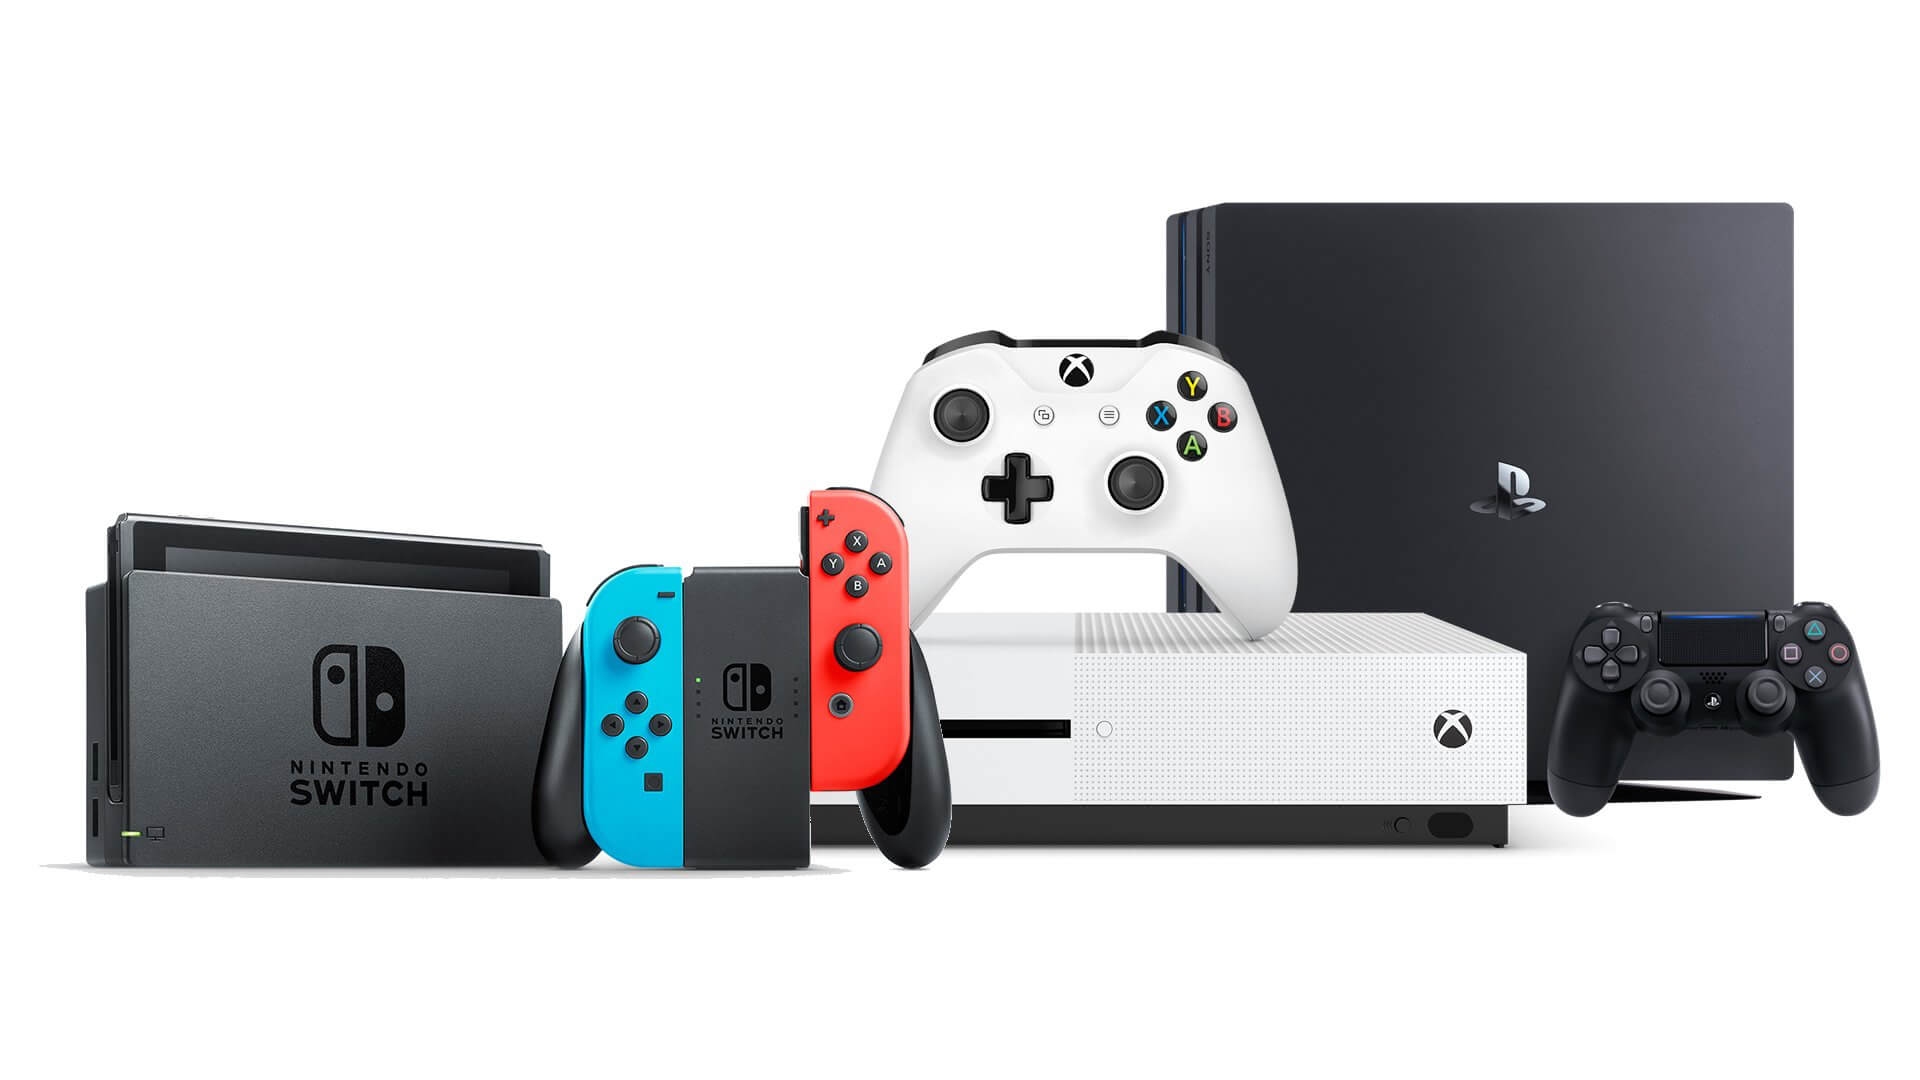 Trade agreement between US and China means no price rise for next-gen consoles